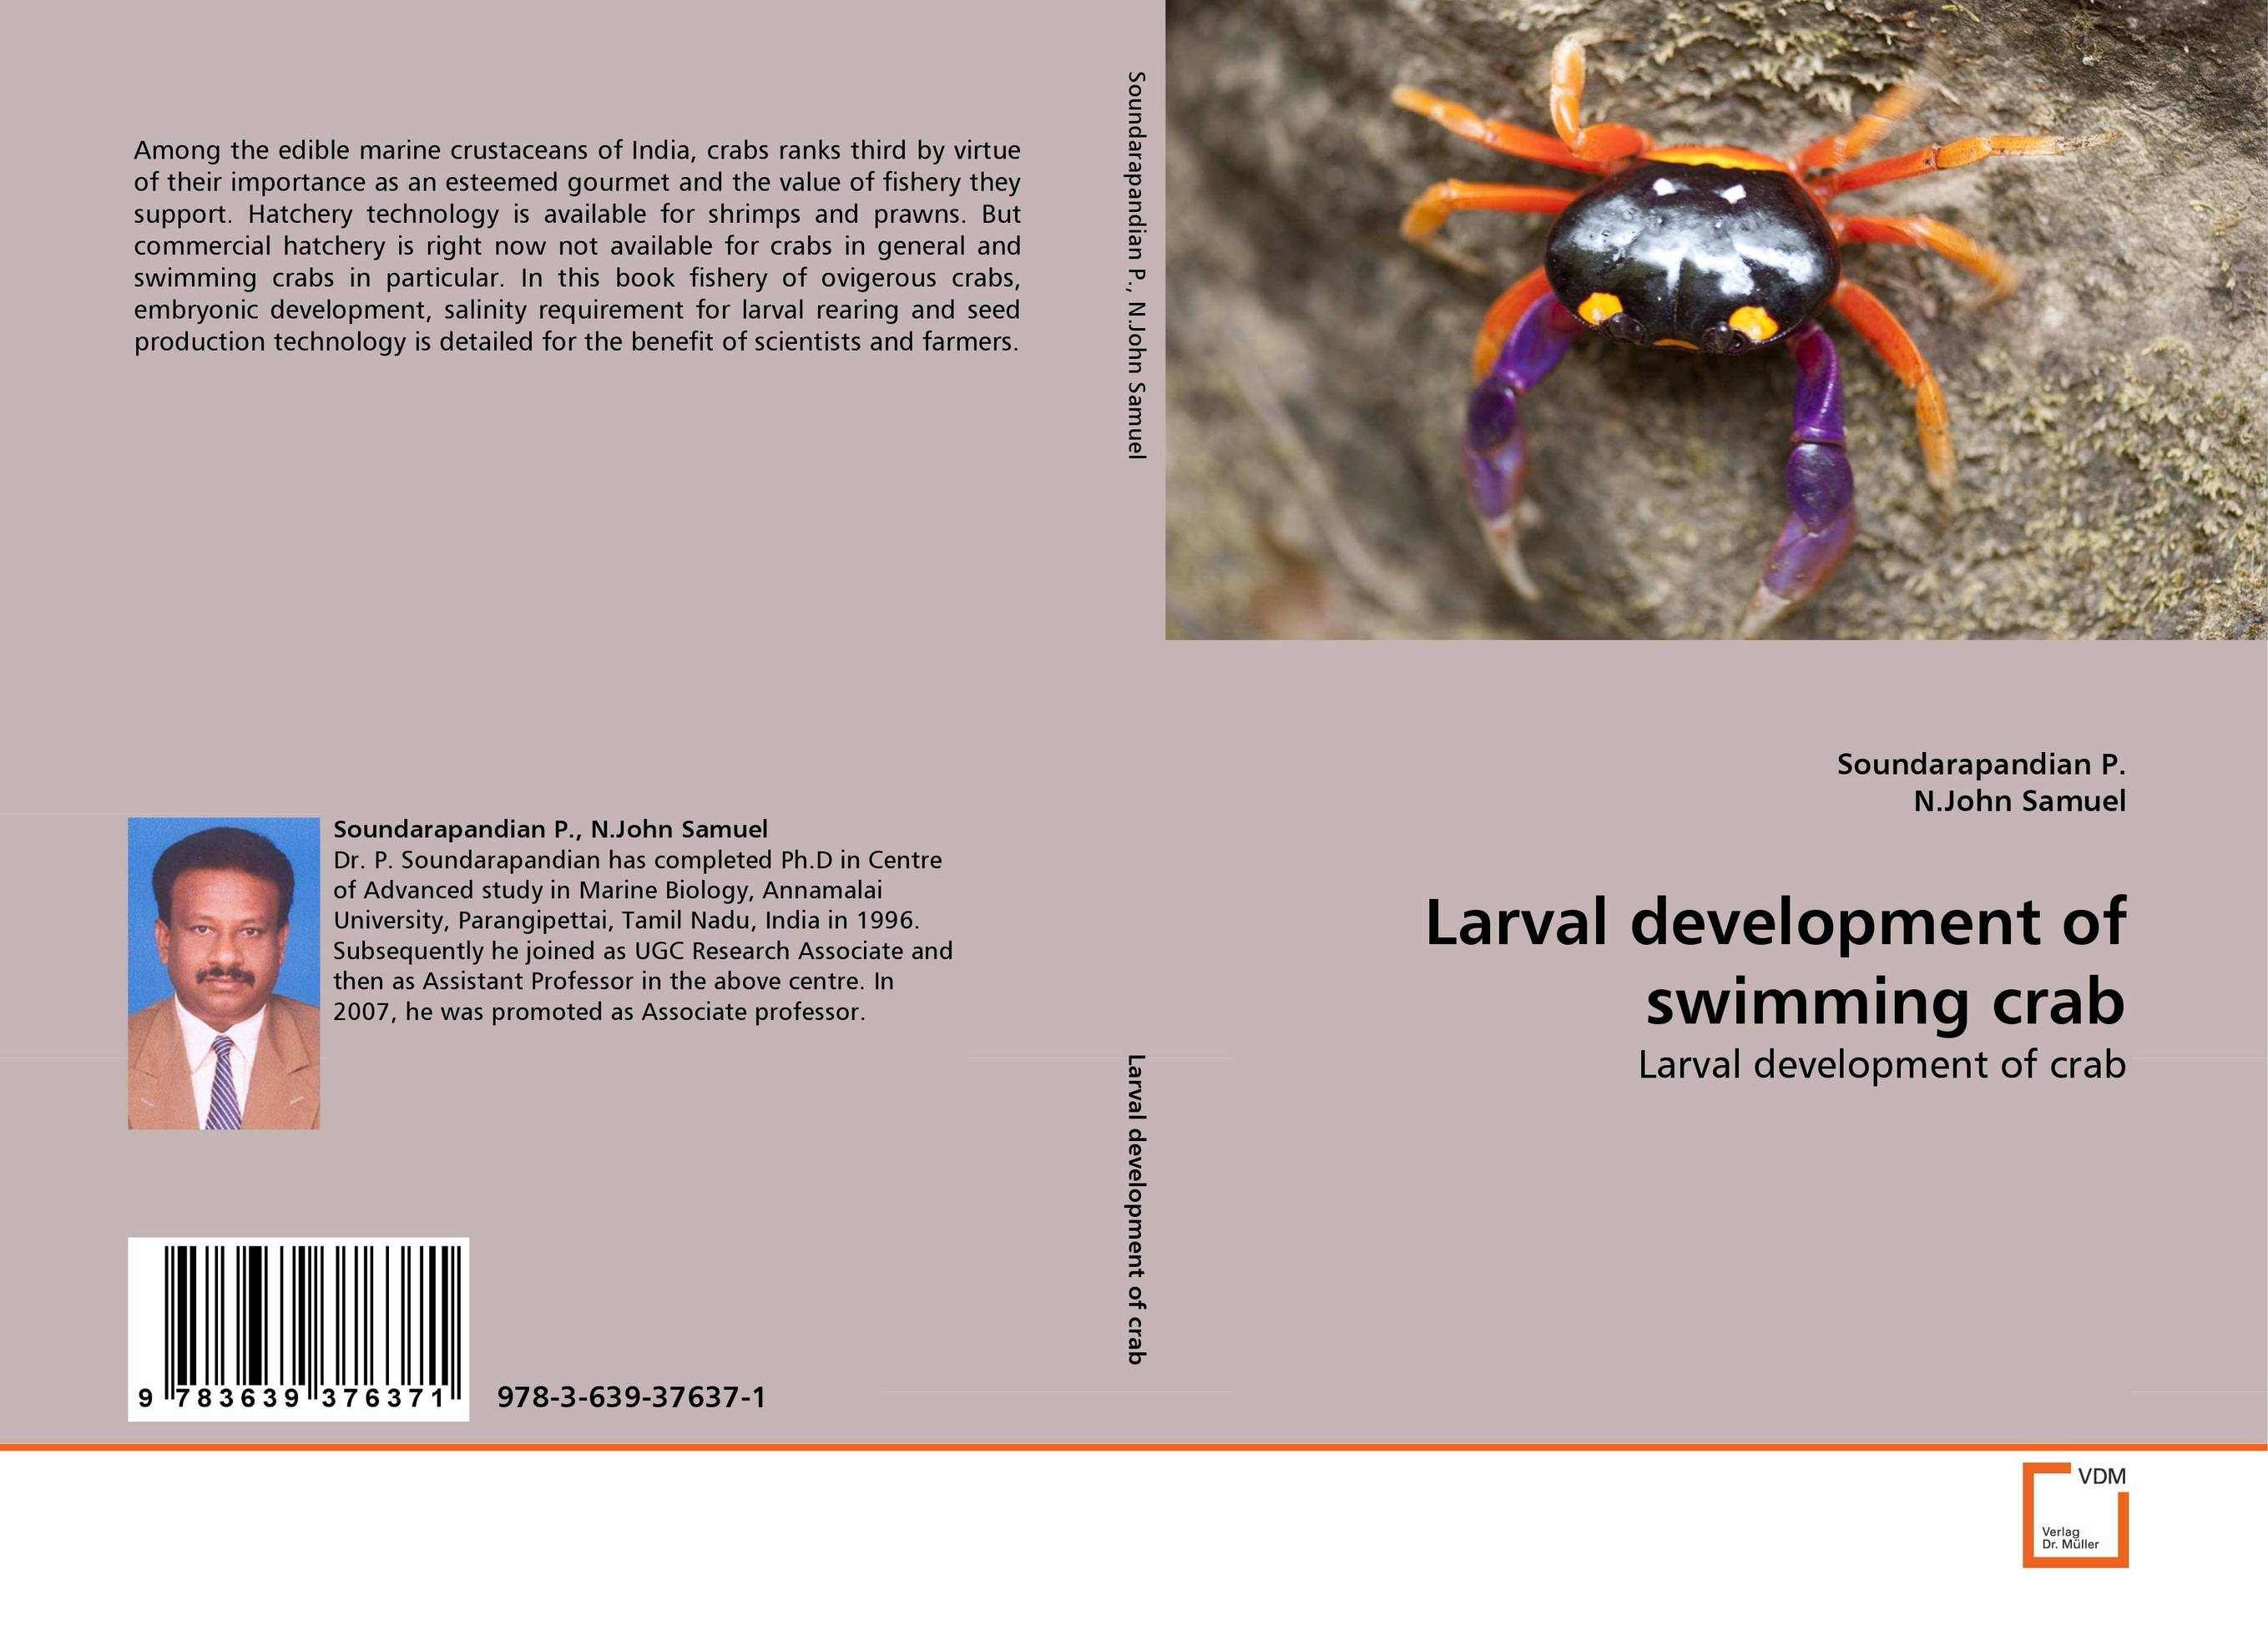 Larval development of swimming crab yu and crabs xuan 2 6 3 0